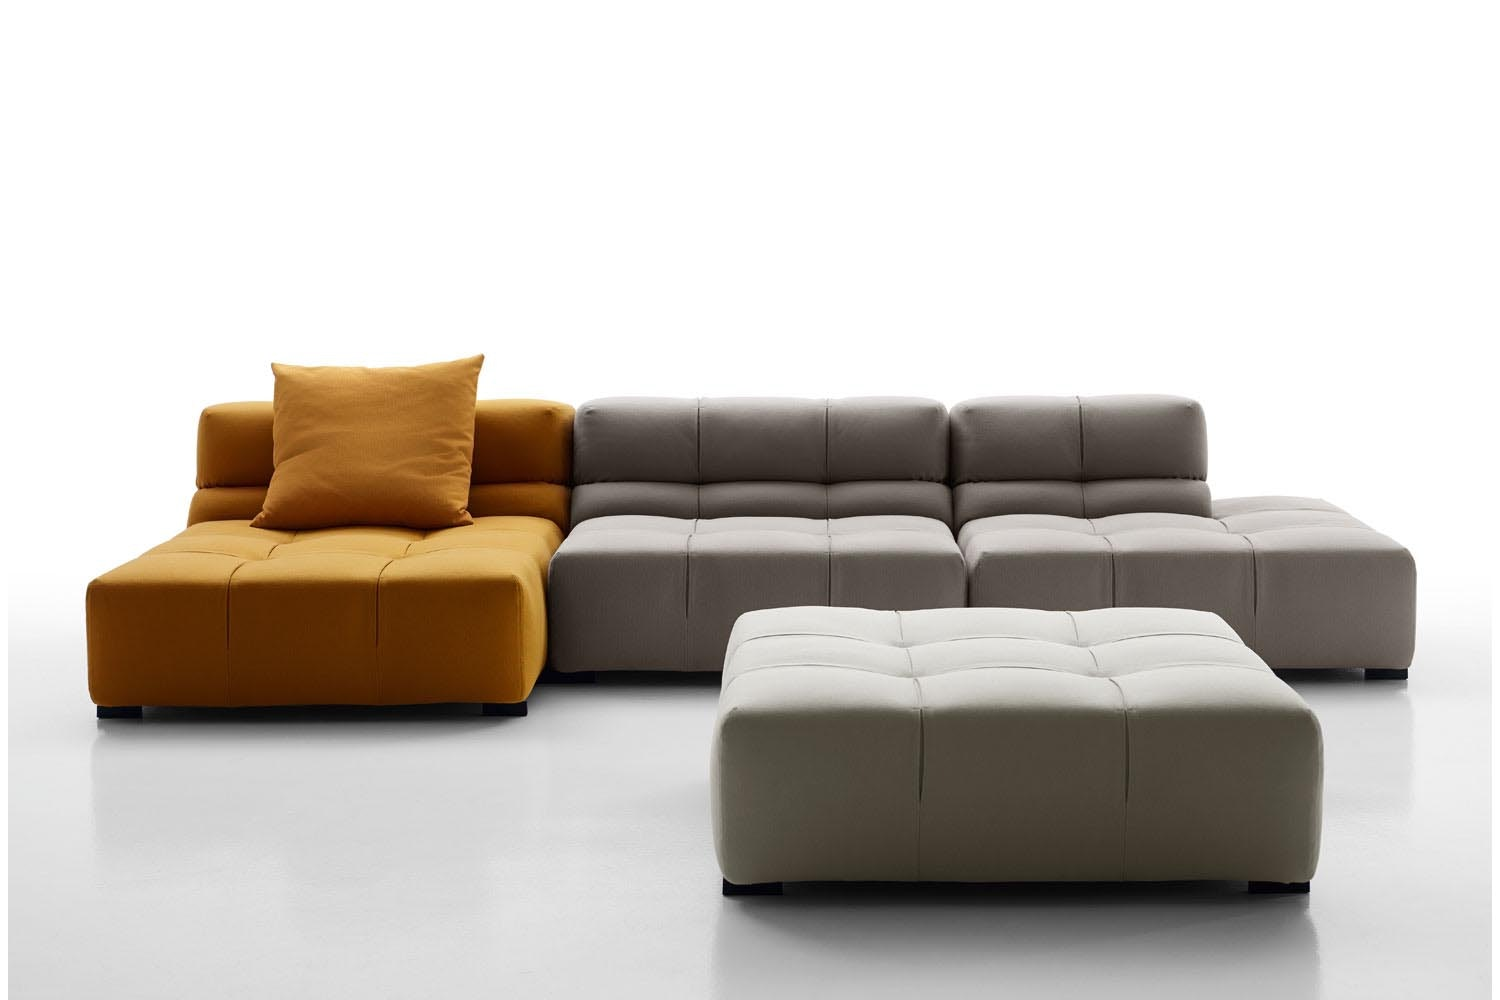 Tufty-Time '15 Sofa by Patricia Urquiola for B&B Italia